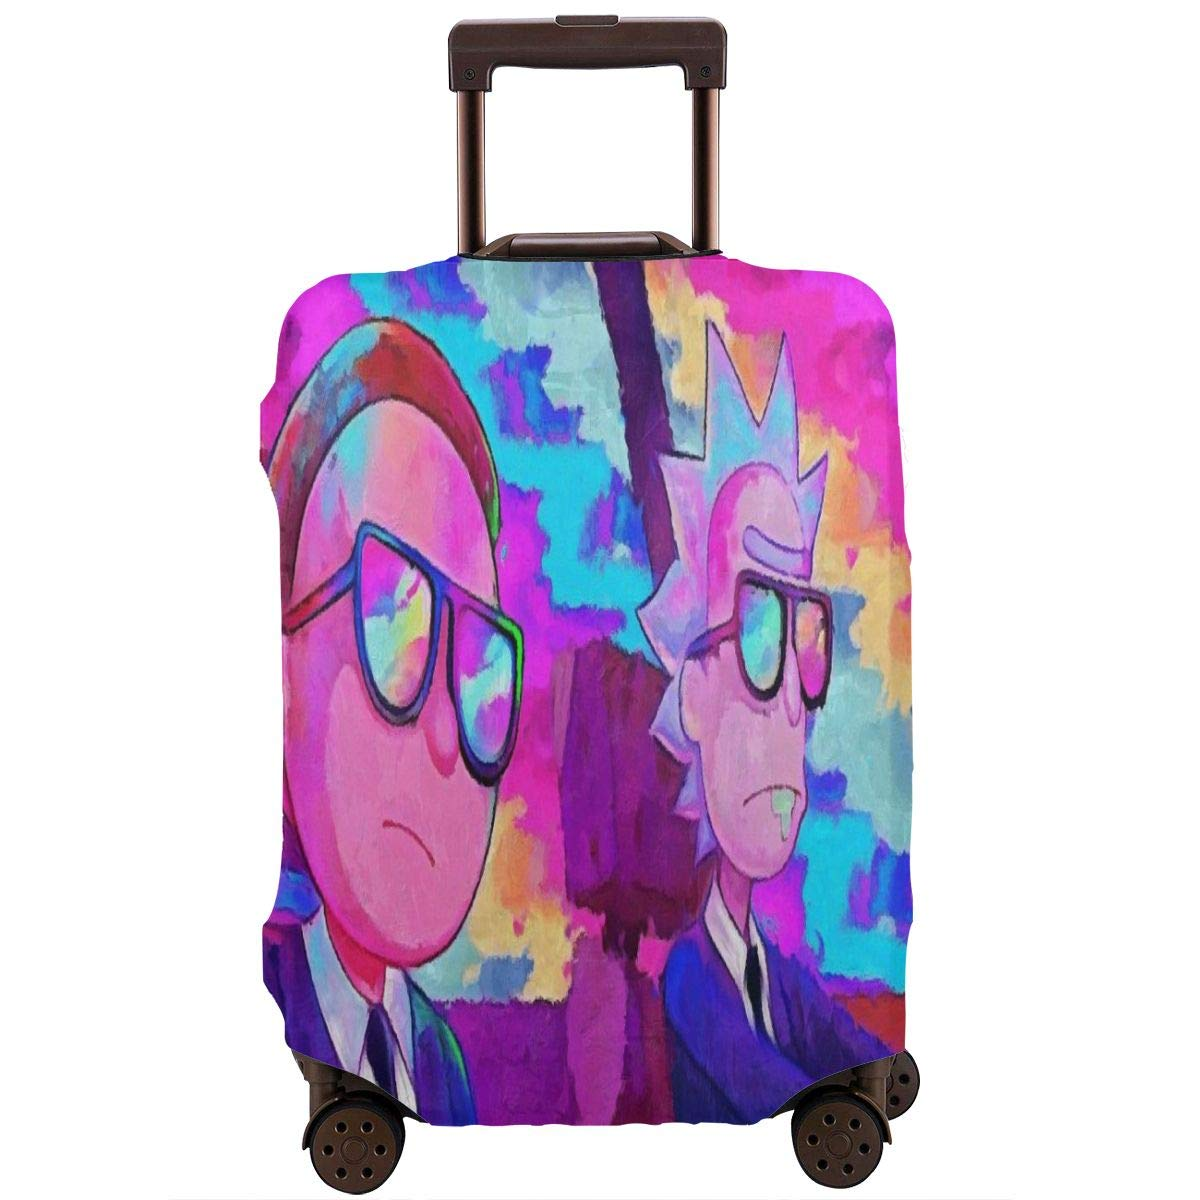 Cartoon Rick With Morty Travel Luggage Cover Suitcase Protector Fits 26-28 Inch Washable Baggage Covers